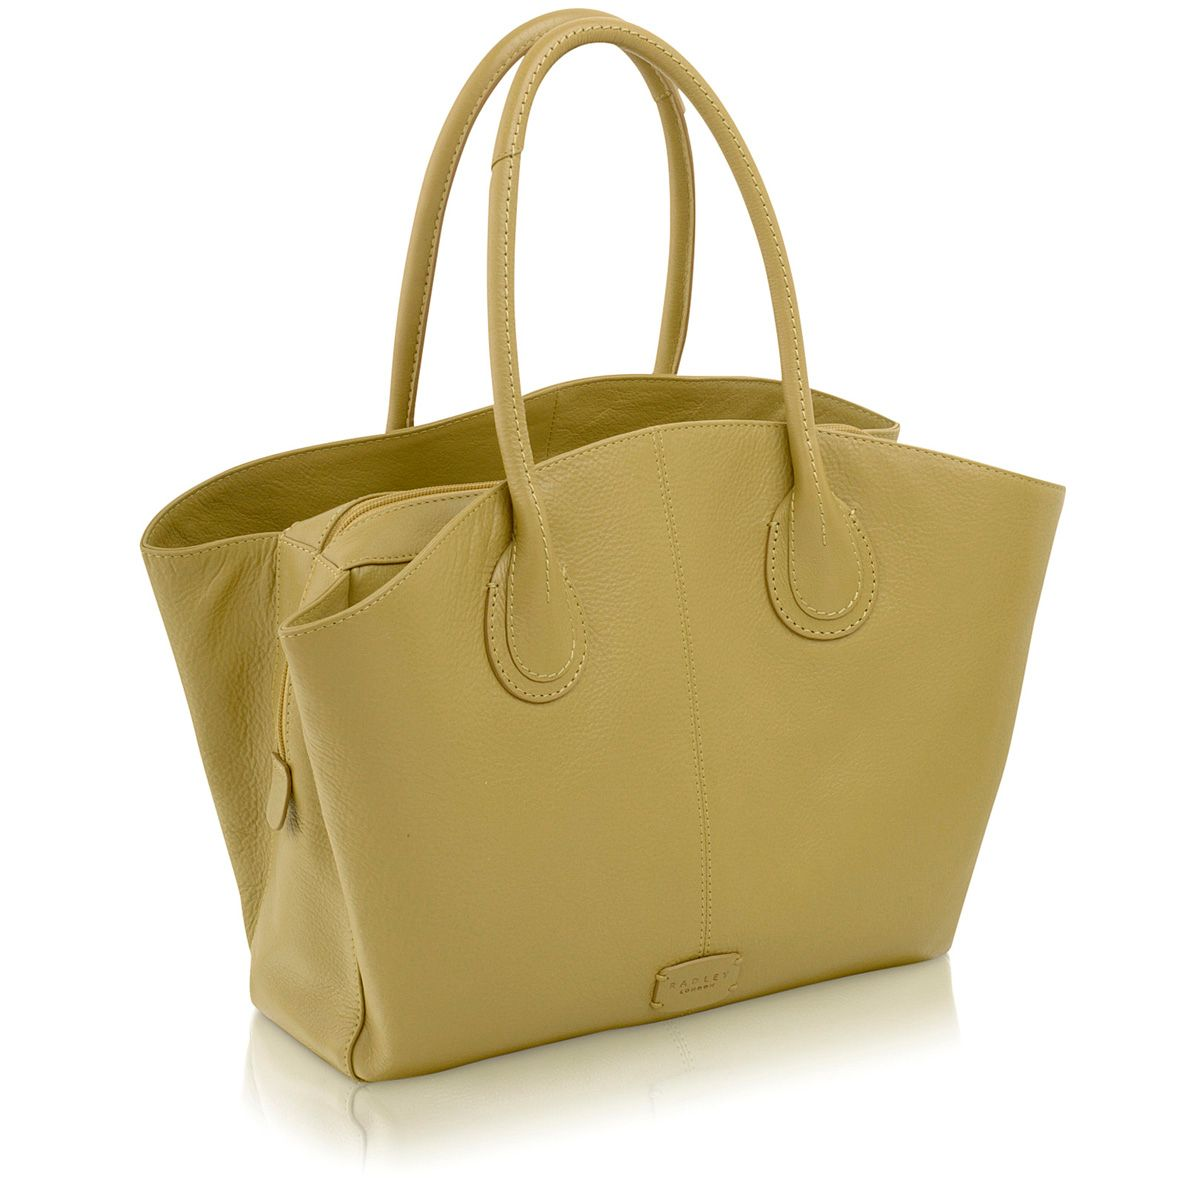 Overton green large leather tote bag